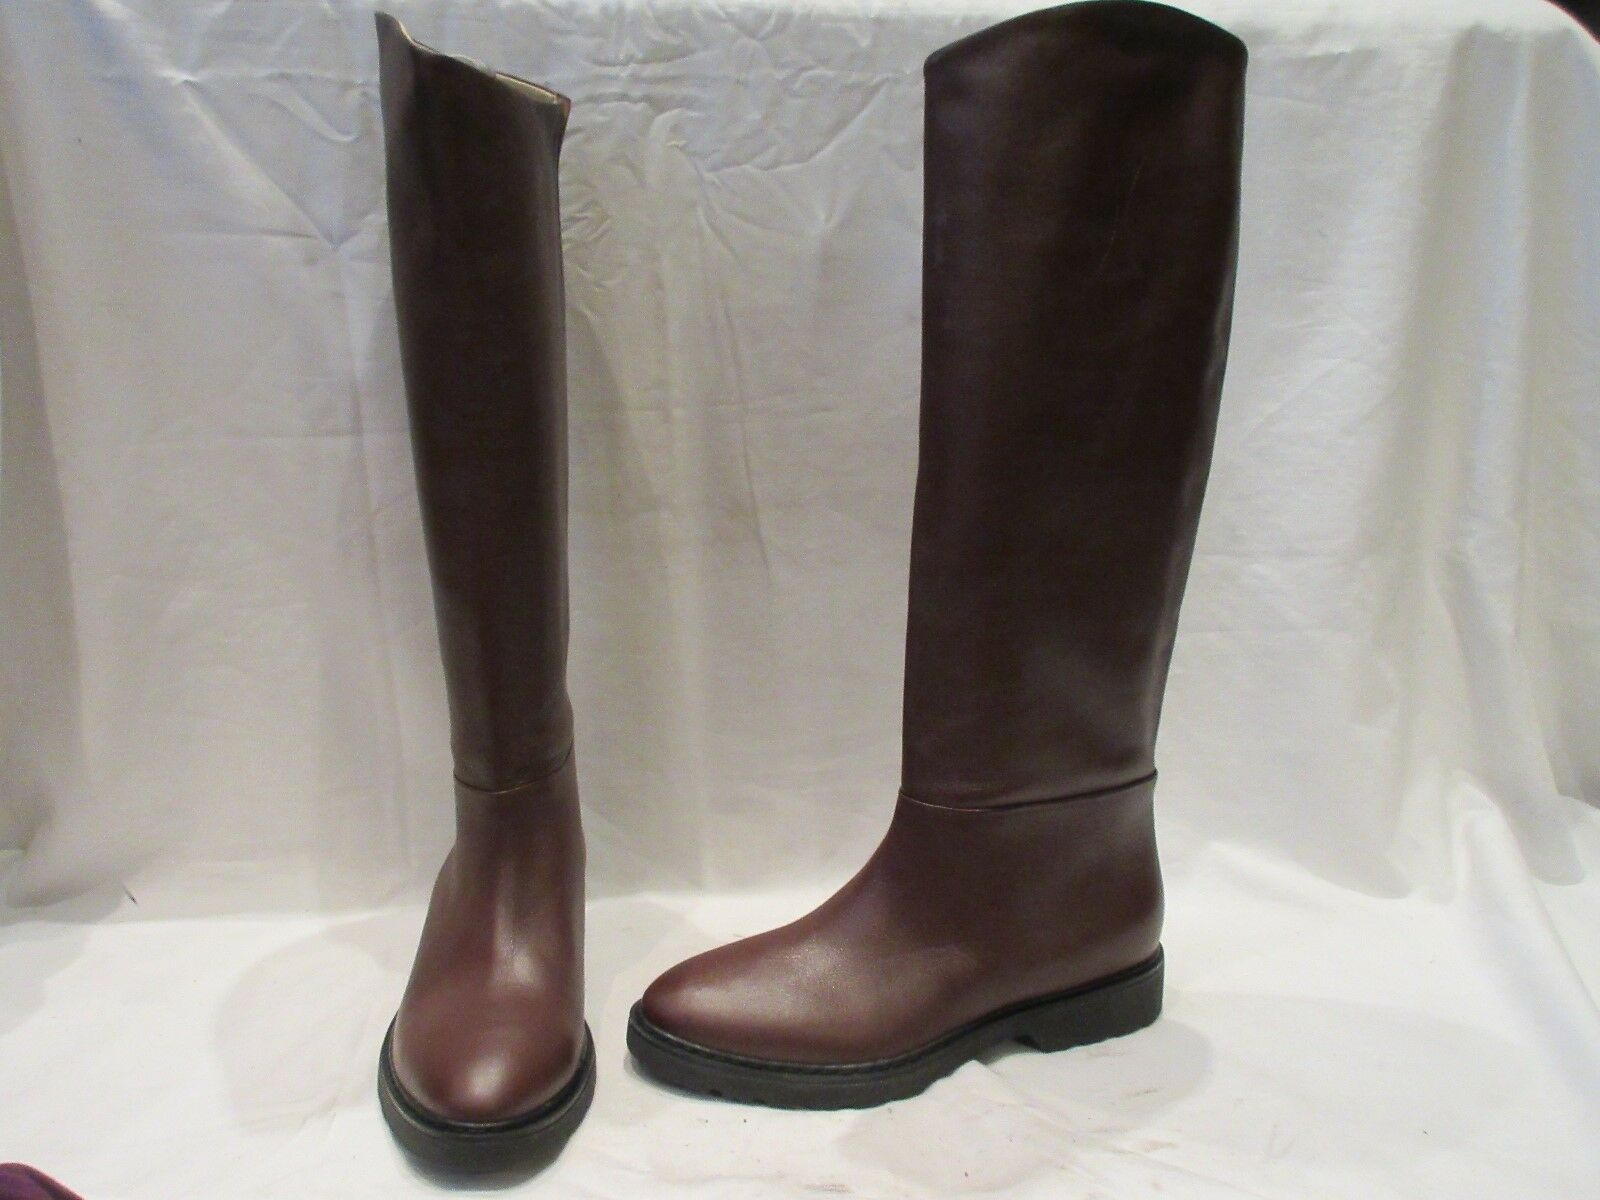 NEW WITH DEFECTS HOBBS ON LONDON PIPER BROWN PULL ON HOBBS BOOTS UK 6 EU 39 US 8 (1509) 186bb1